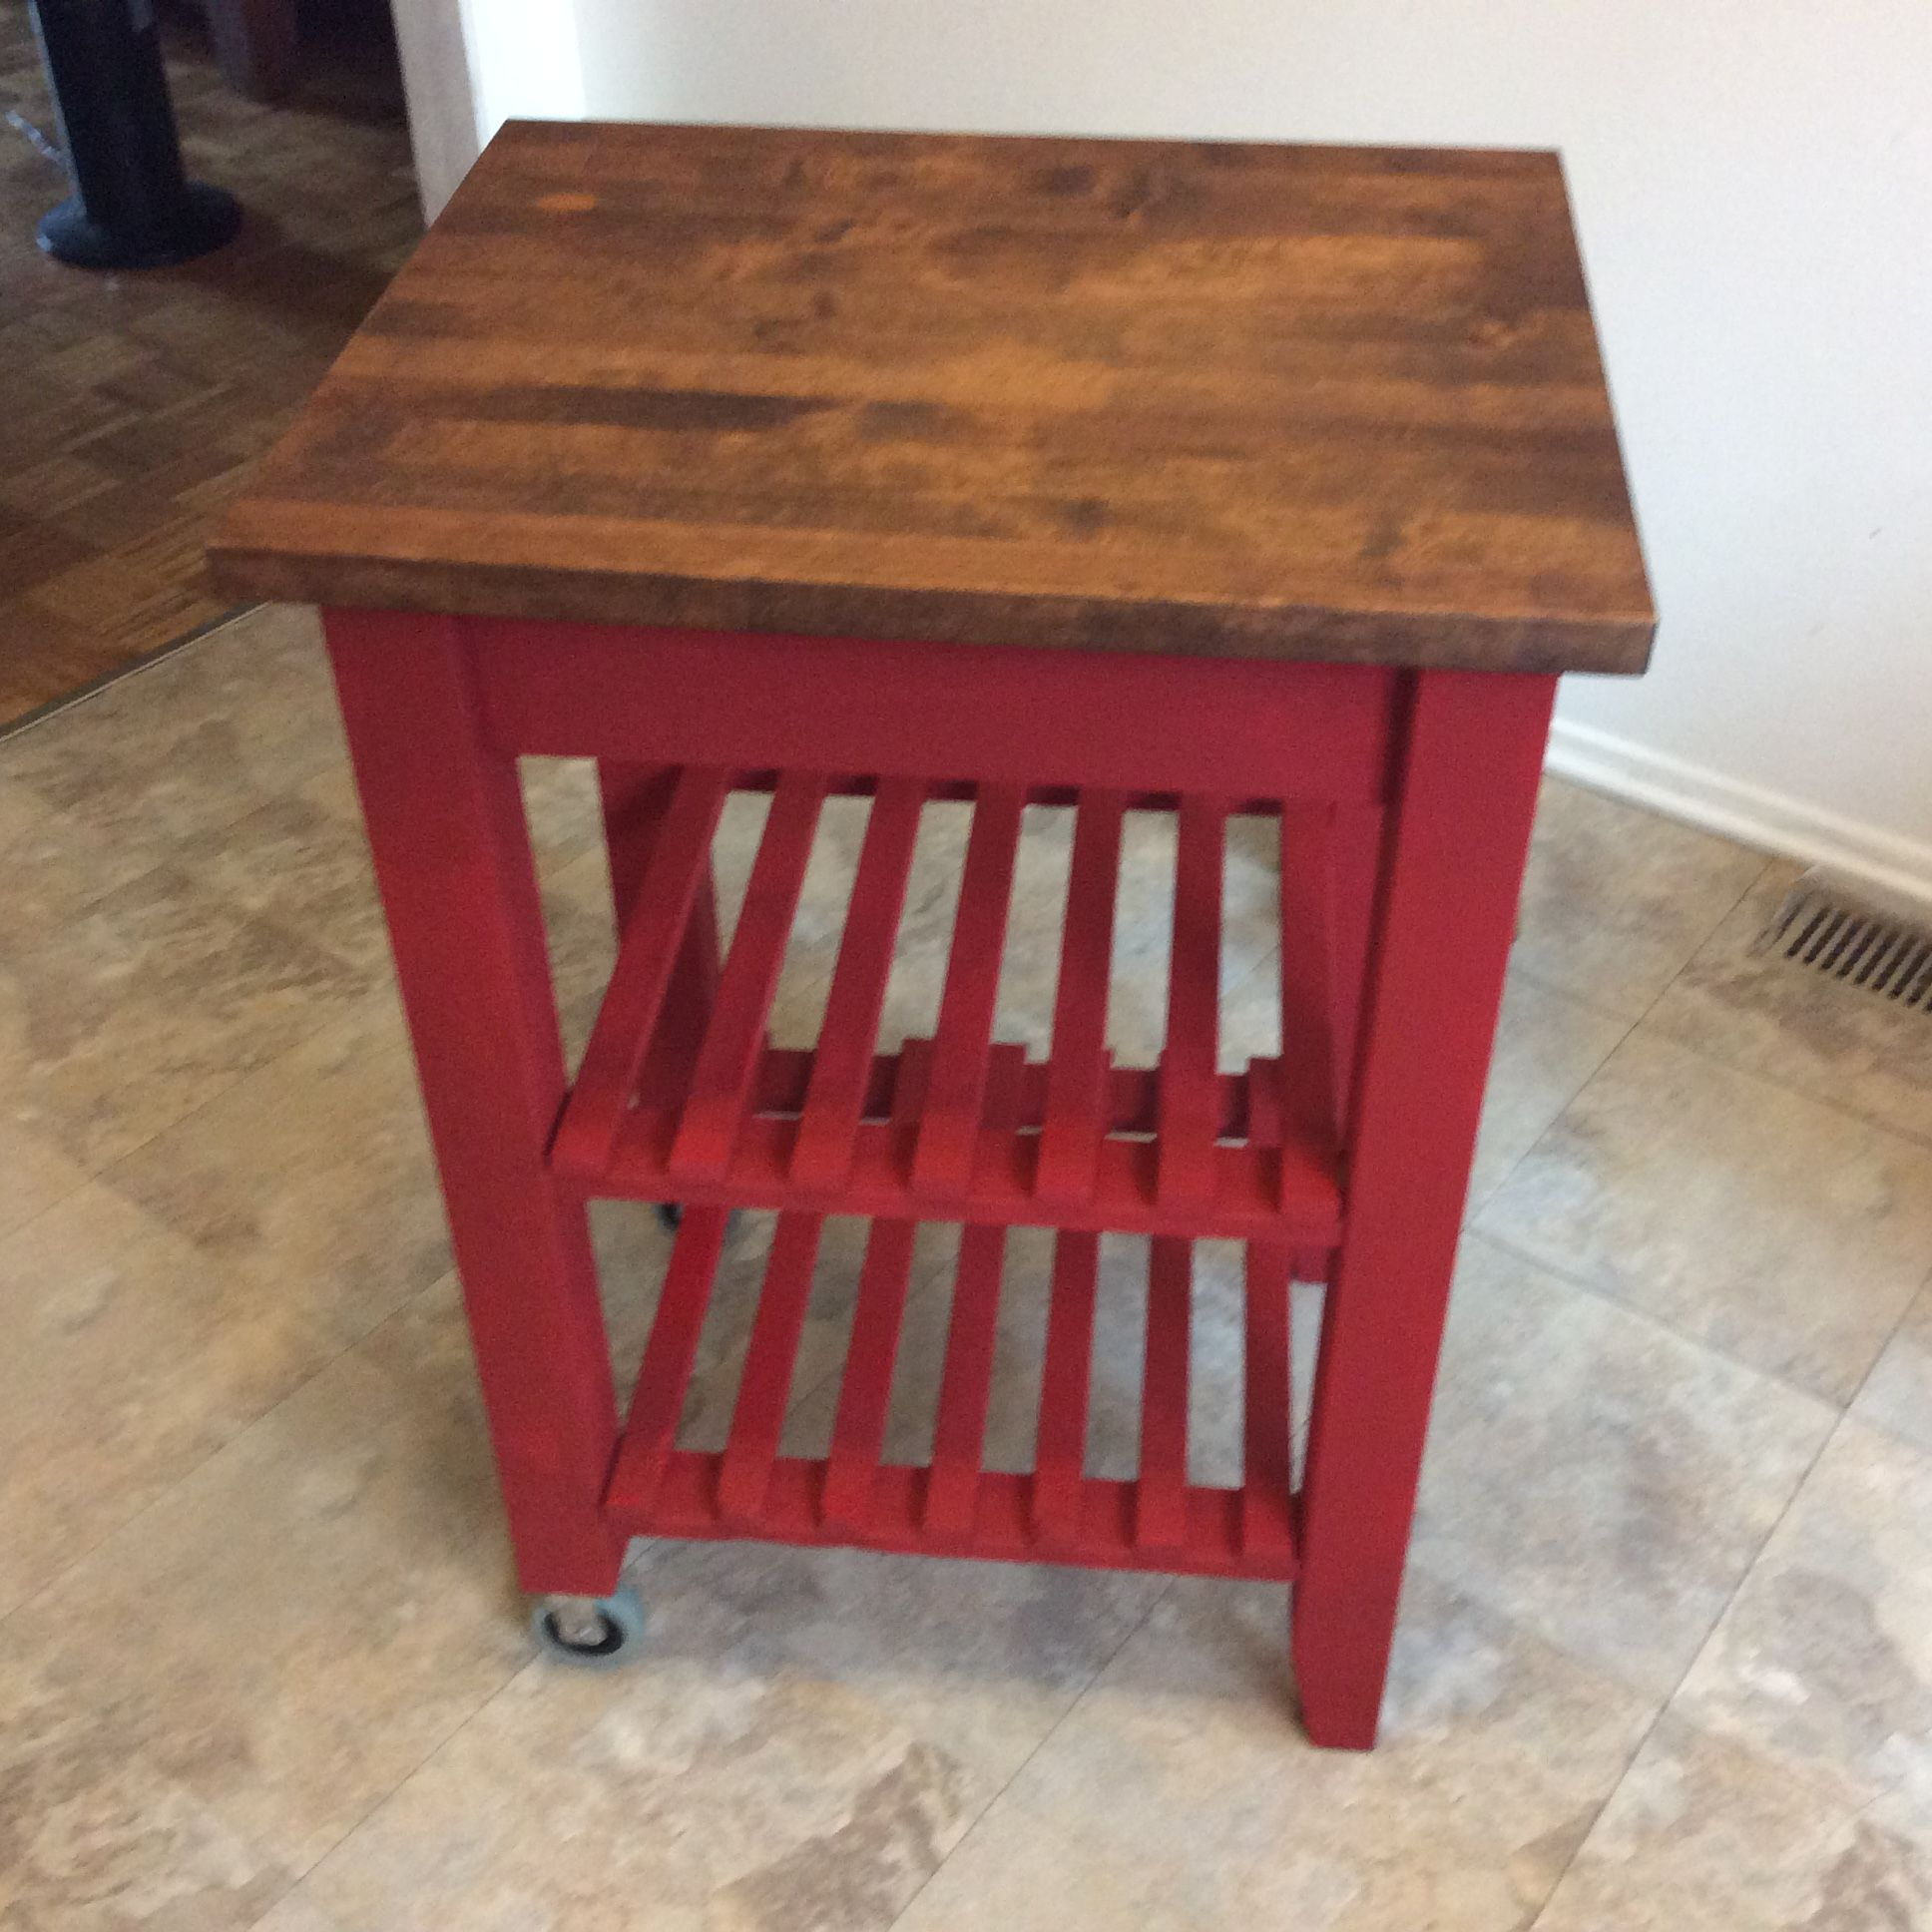 AFTERSecond hand purchase, wooden butchers block/kitchen